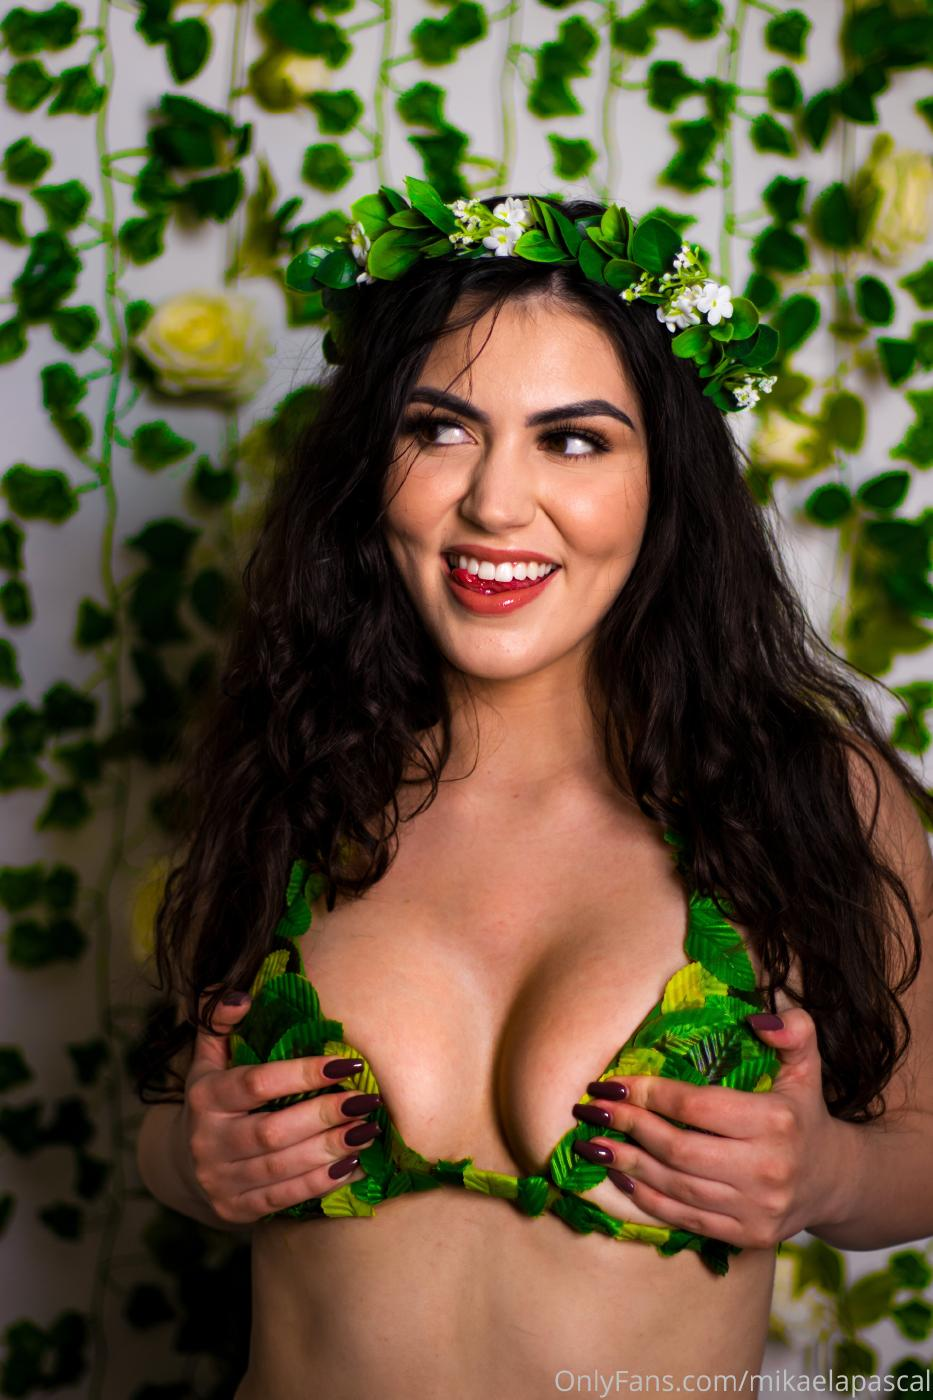 Mikaela Pascal May Extras Onlyfans Set Leaked Seqsio